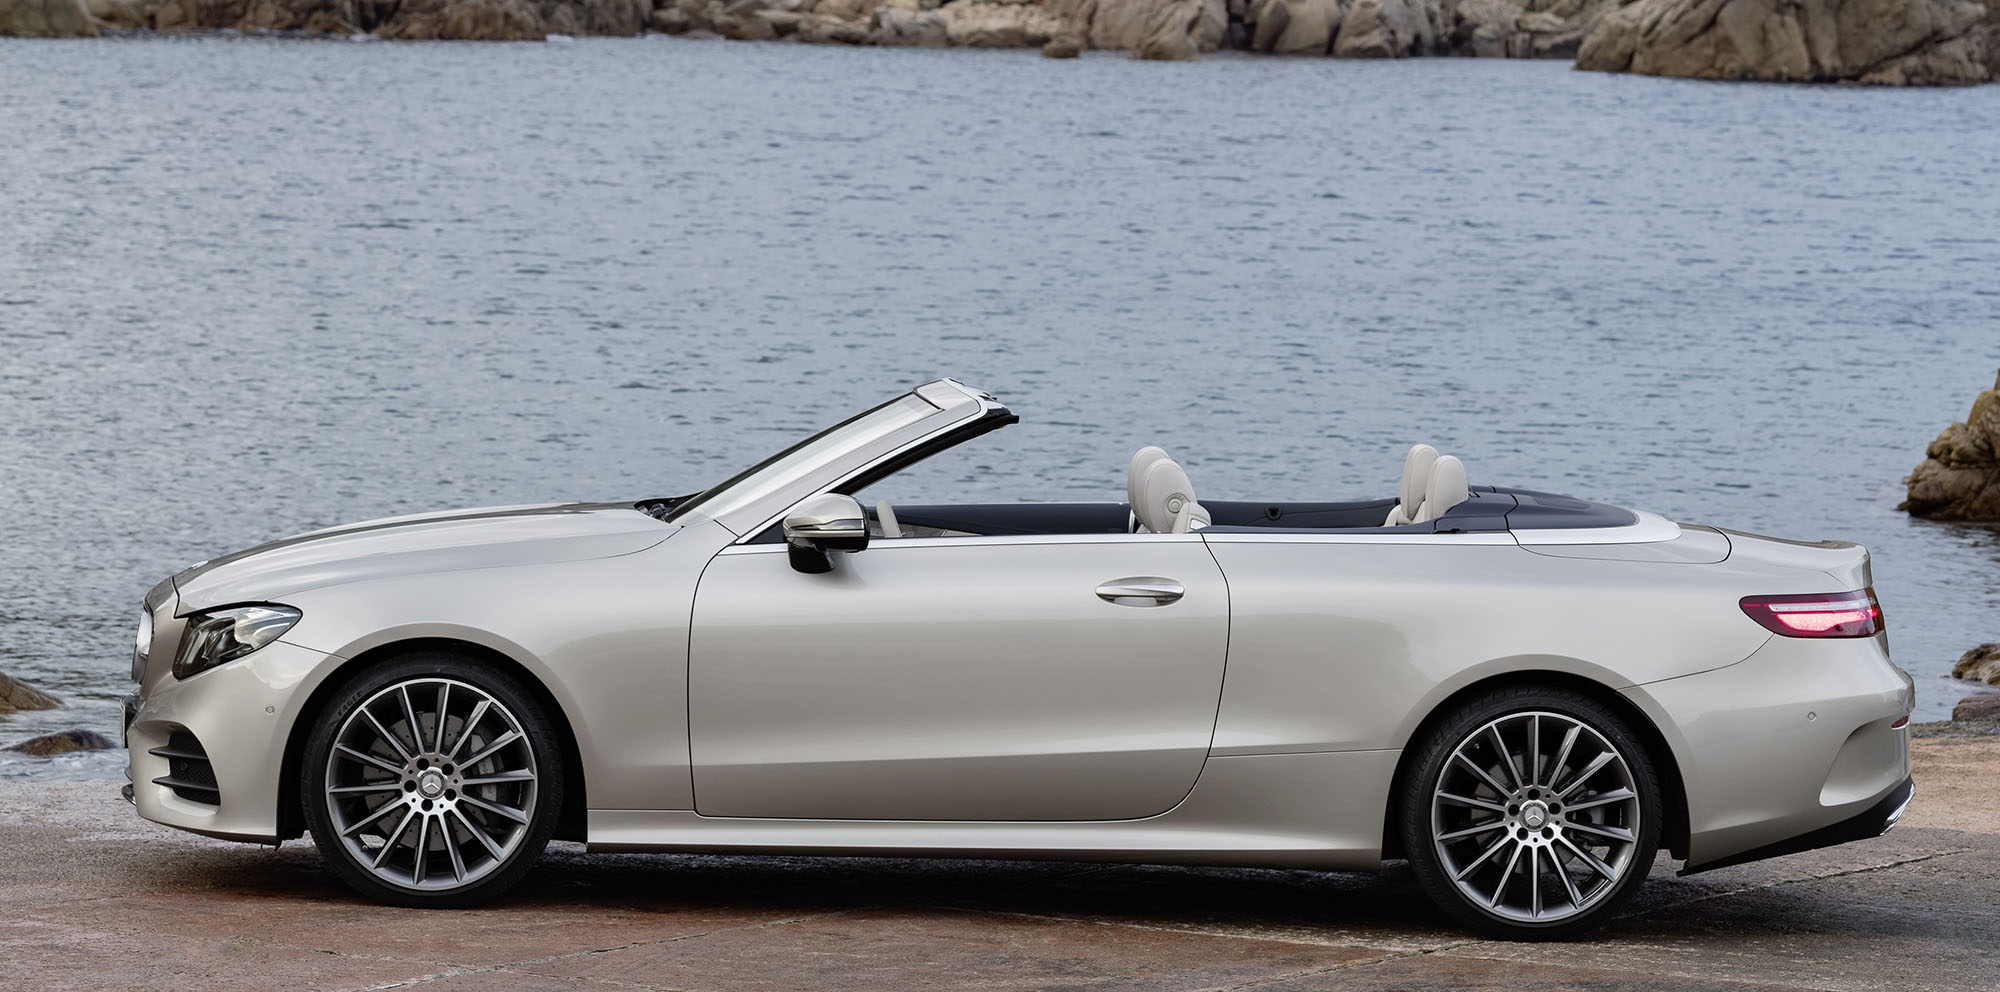 2017 Mercedes Benz E Class Cabriolet Revealed Photos Caradvice